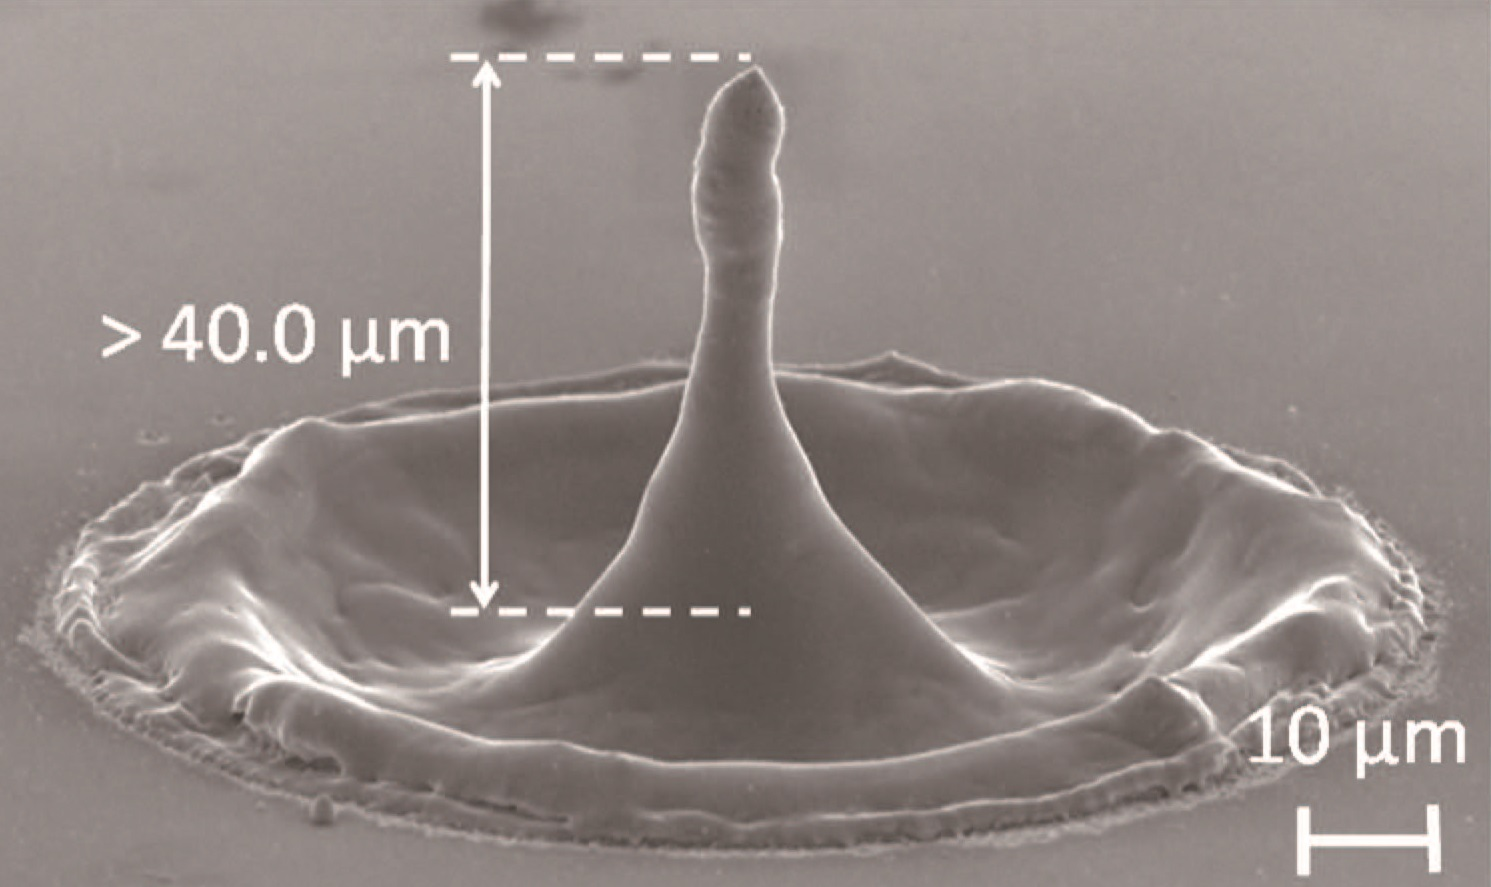 Silicon needle fabricated by the irradiation of 12 overlaid picosecond vortex pulses with a pulse energy of 0.6 mJ.